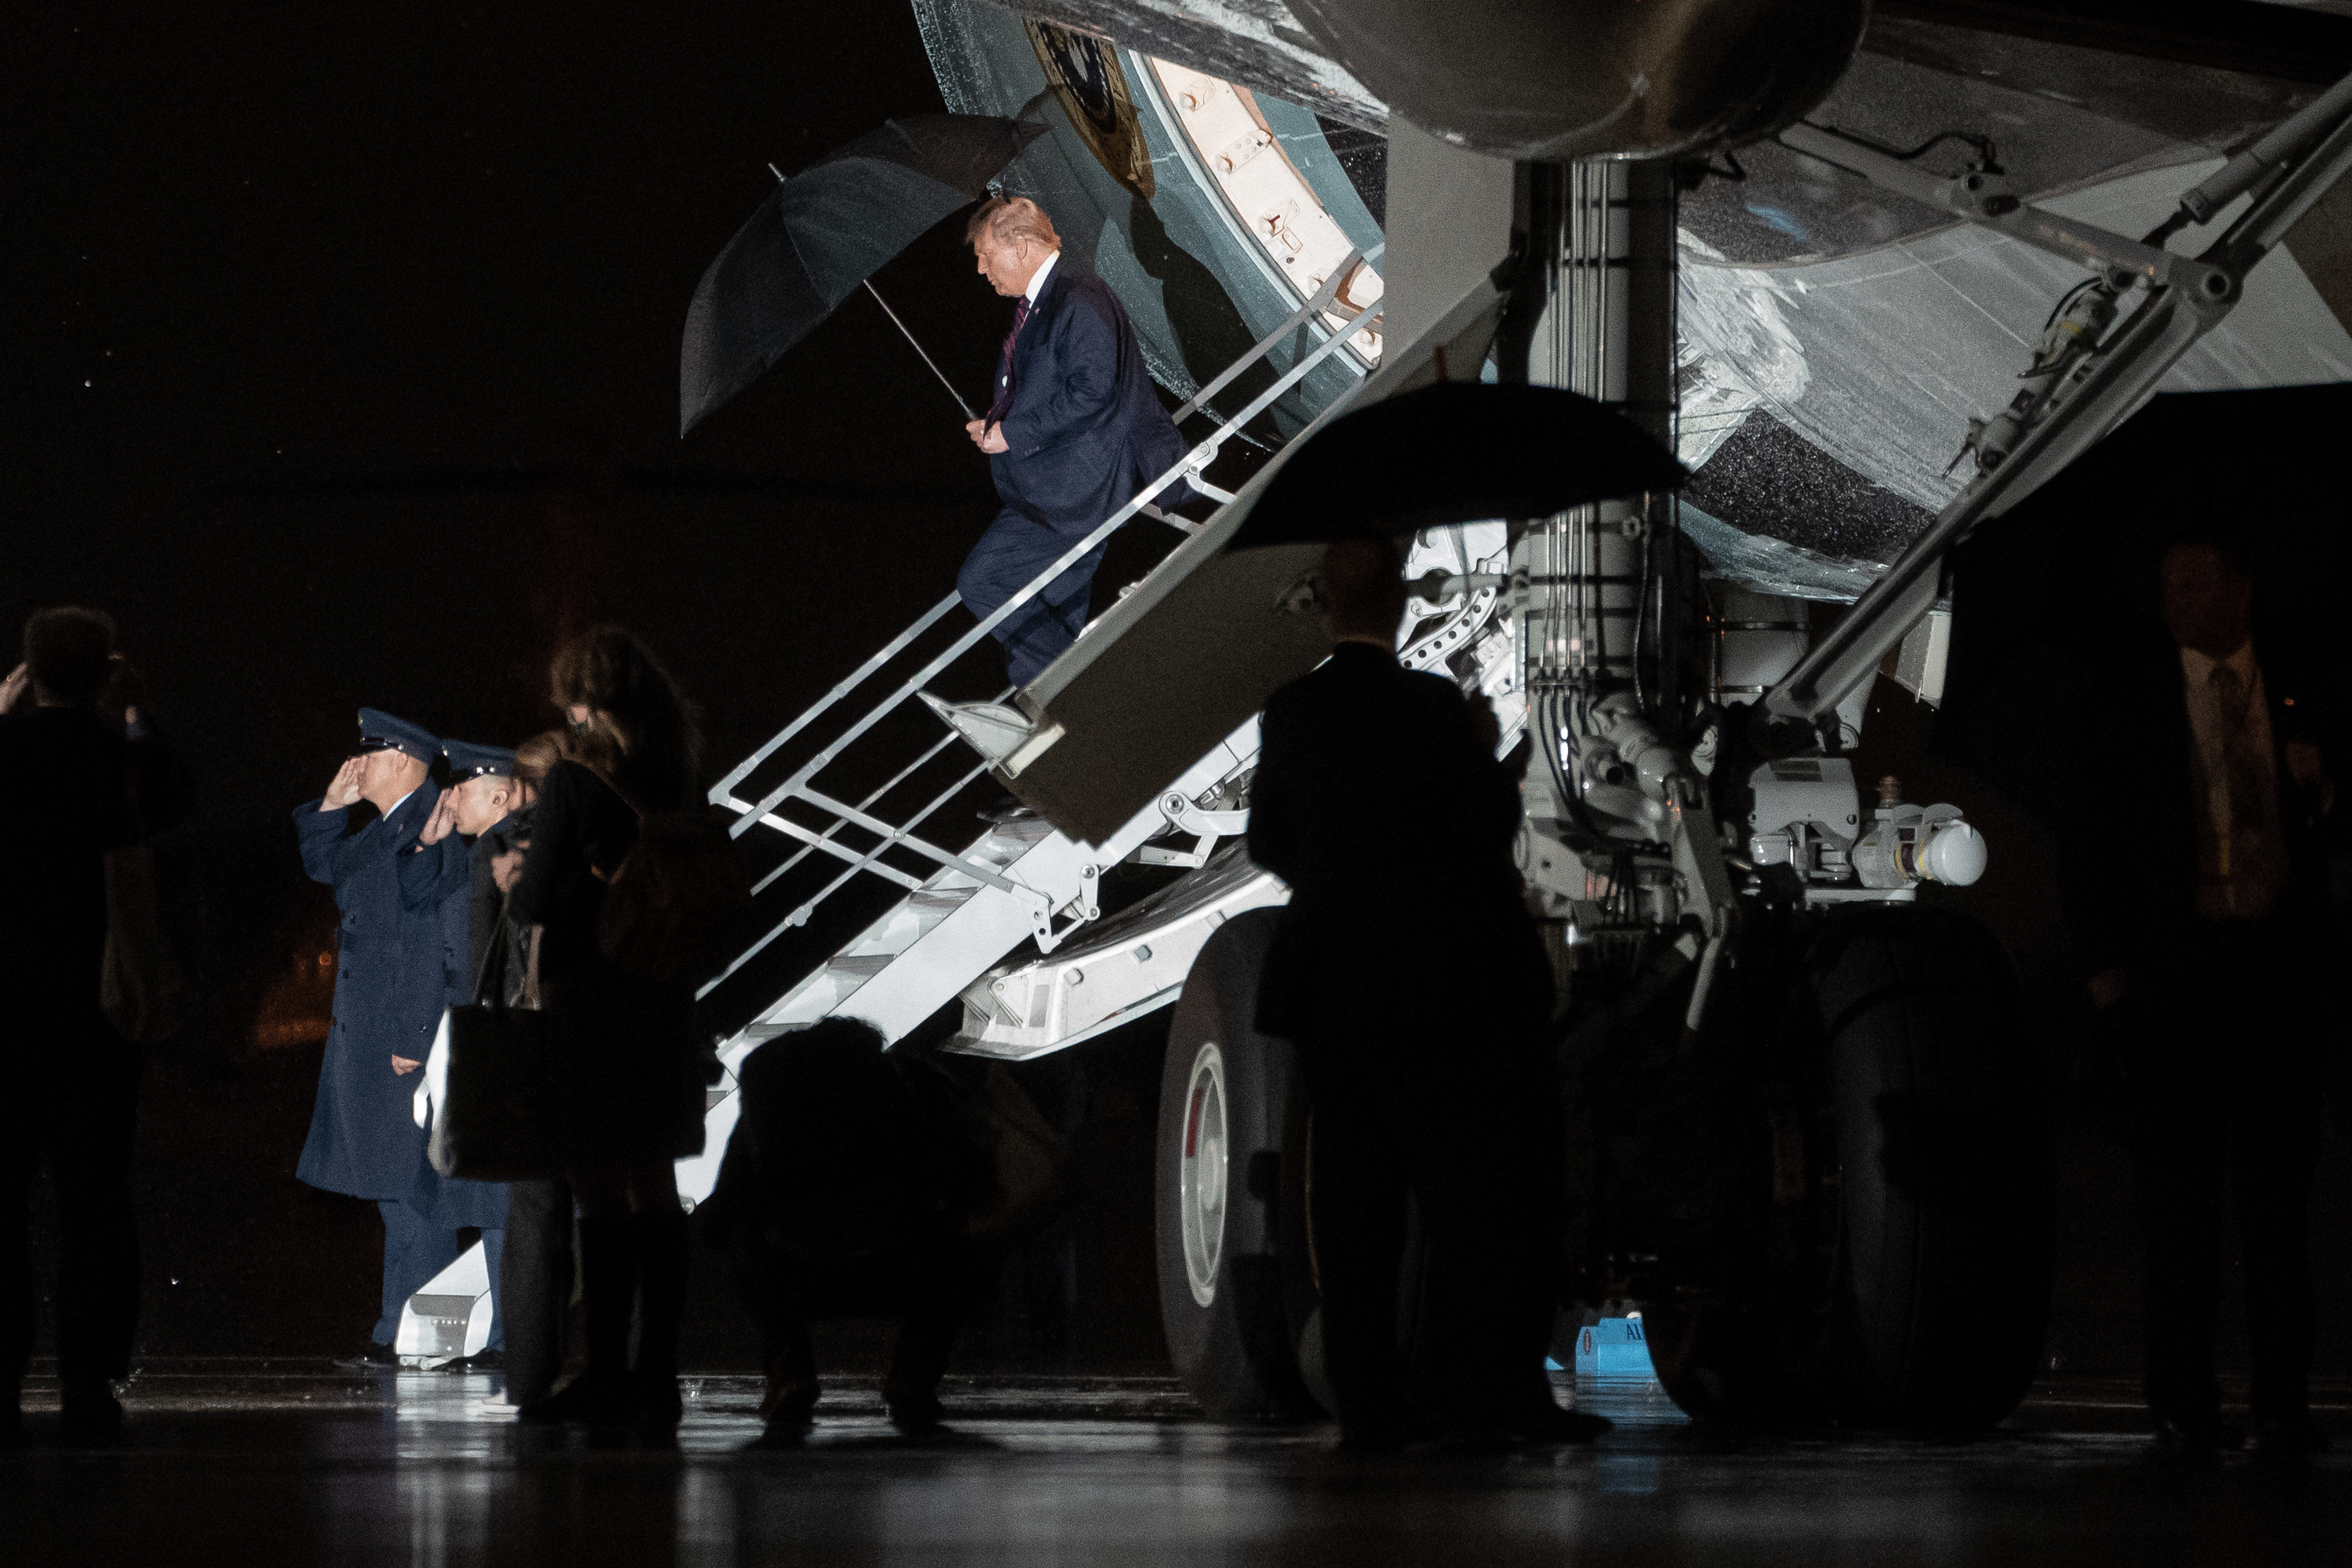 President Donald Trump walks off Air Force One at Joint Base Andrews Wednesday, September 30, 2020 in Washington, DC. Trump returned from his first Presidential debate with Former Vice President Joe Biden in Cleveland, Ohio. Photo by Ken Cedeno/Pool/Sipa USA